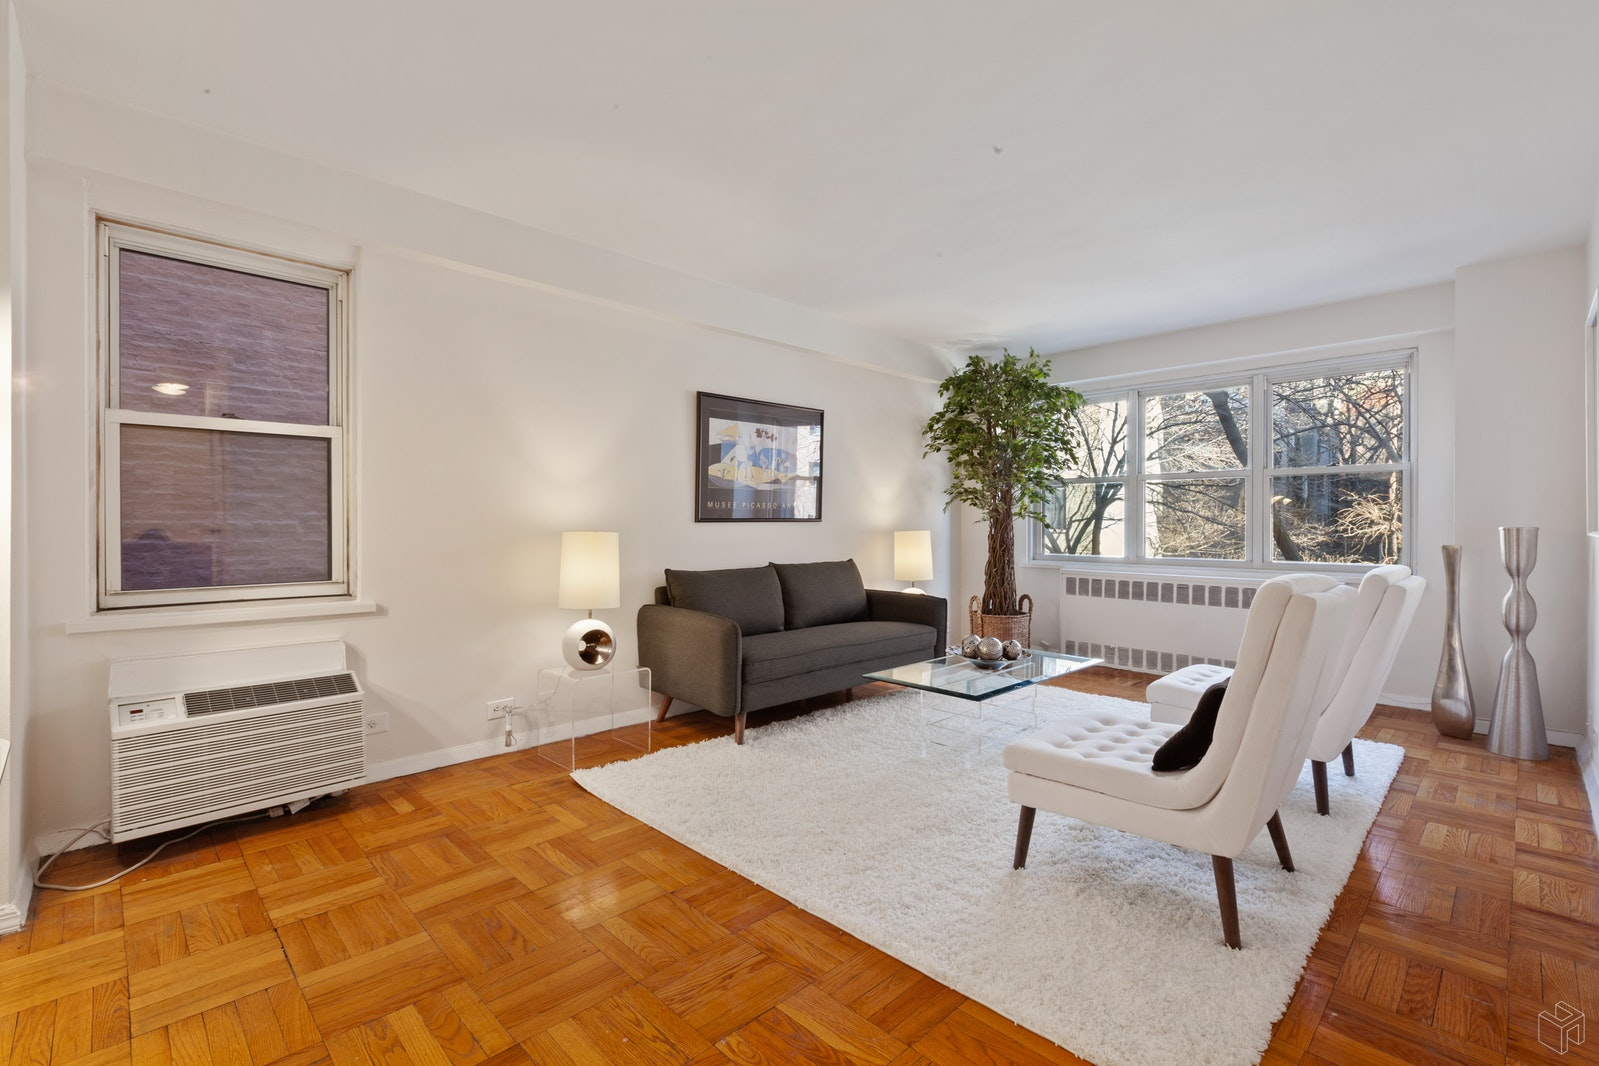 166 EAST 35TH STREET 3BC, Midtown East, $1,095,000, Web #: 19426324